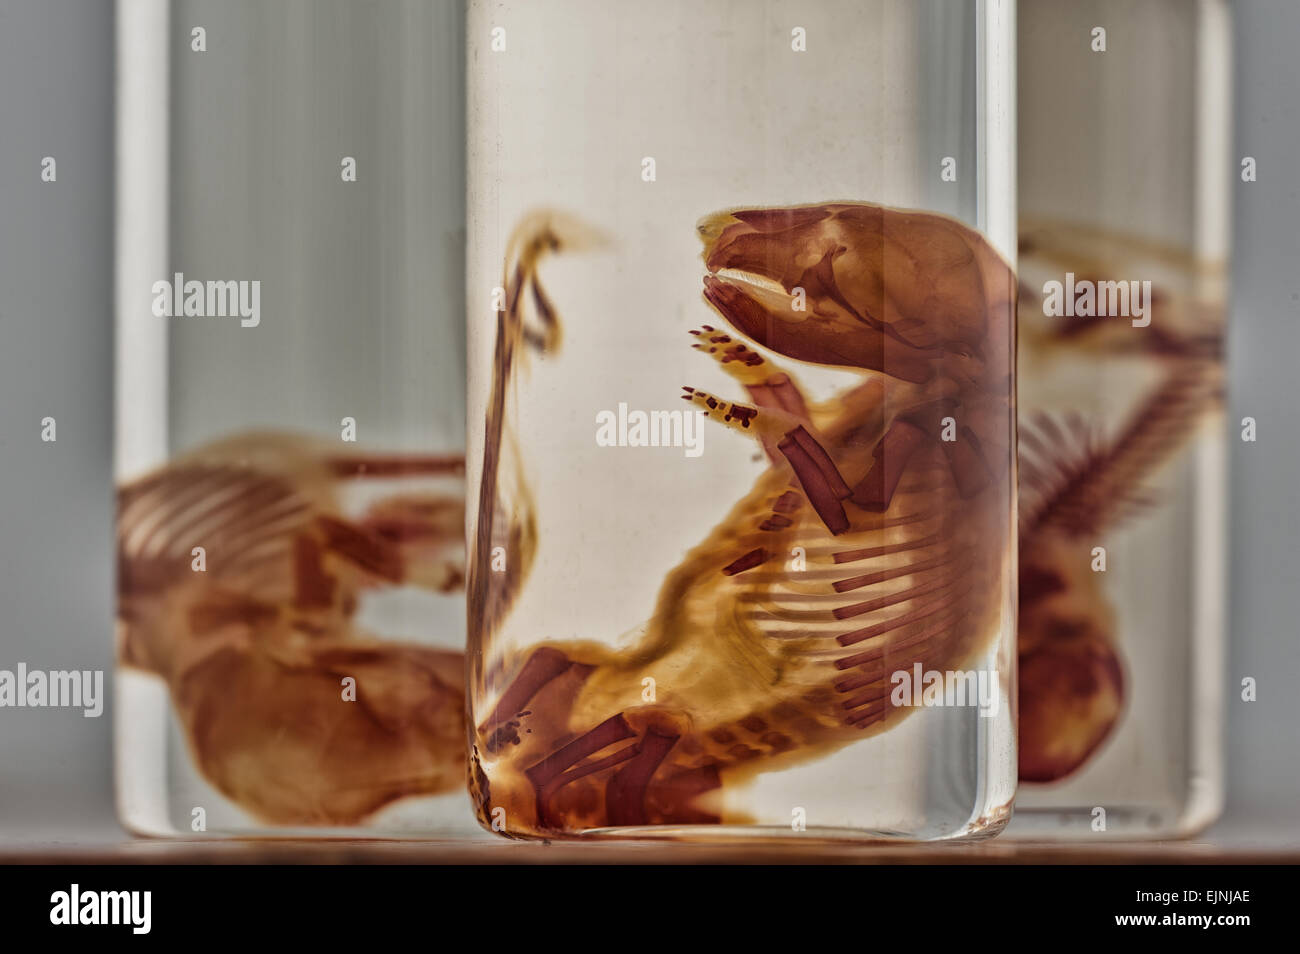 Scientific curiosities preserved rat fetus specimens in specimen jars showing stained skeletal bones and cartilage - Stock Image